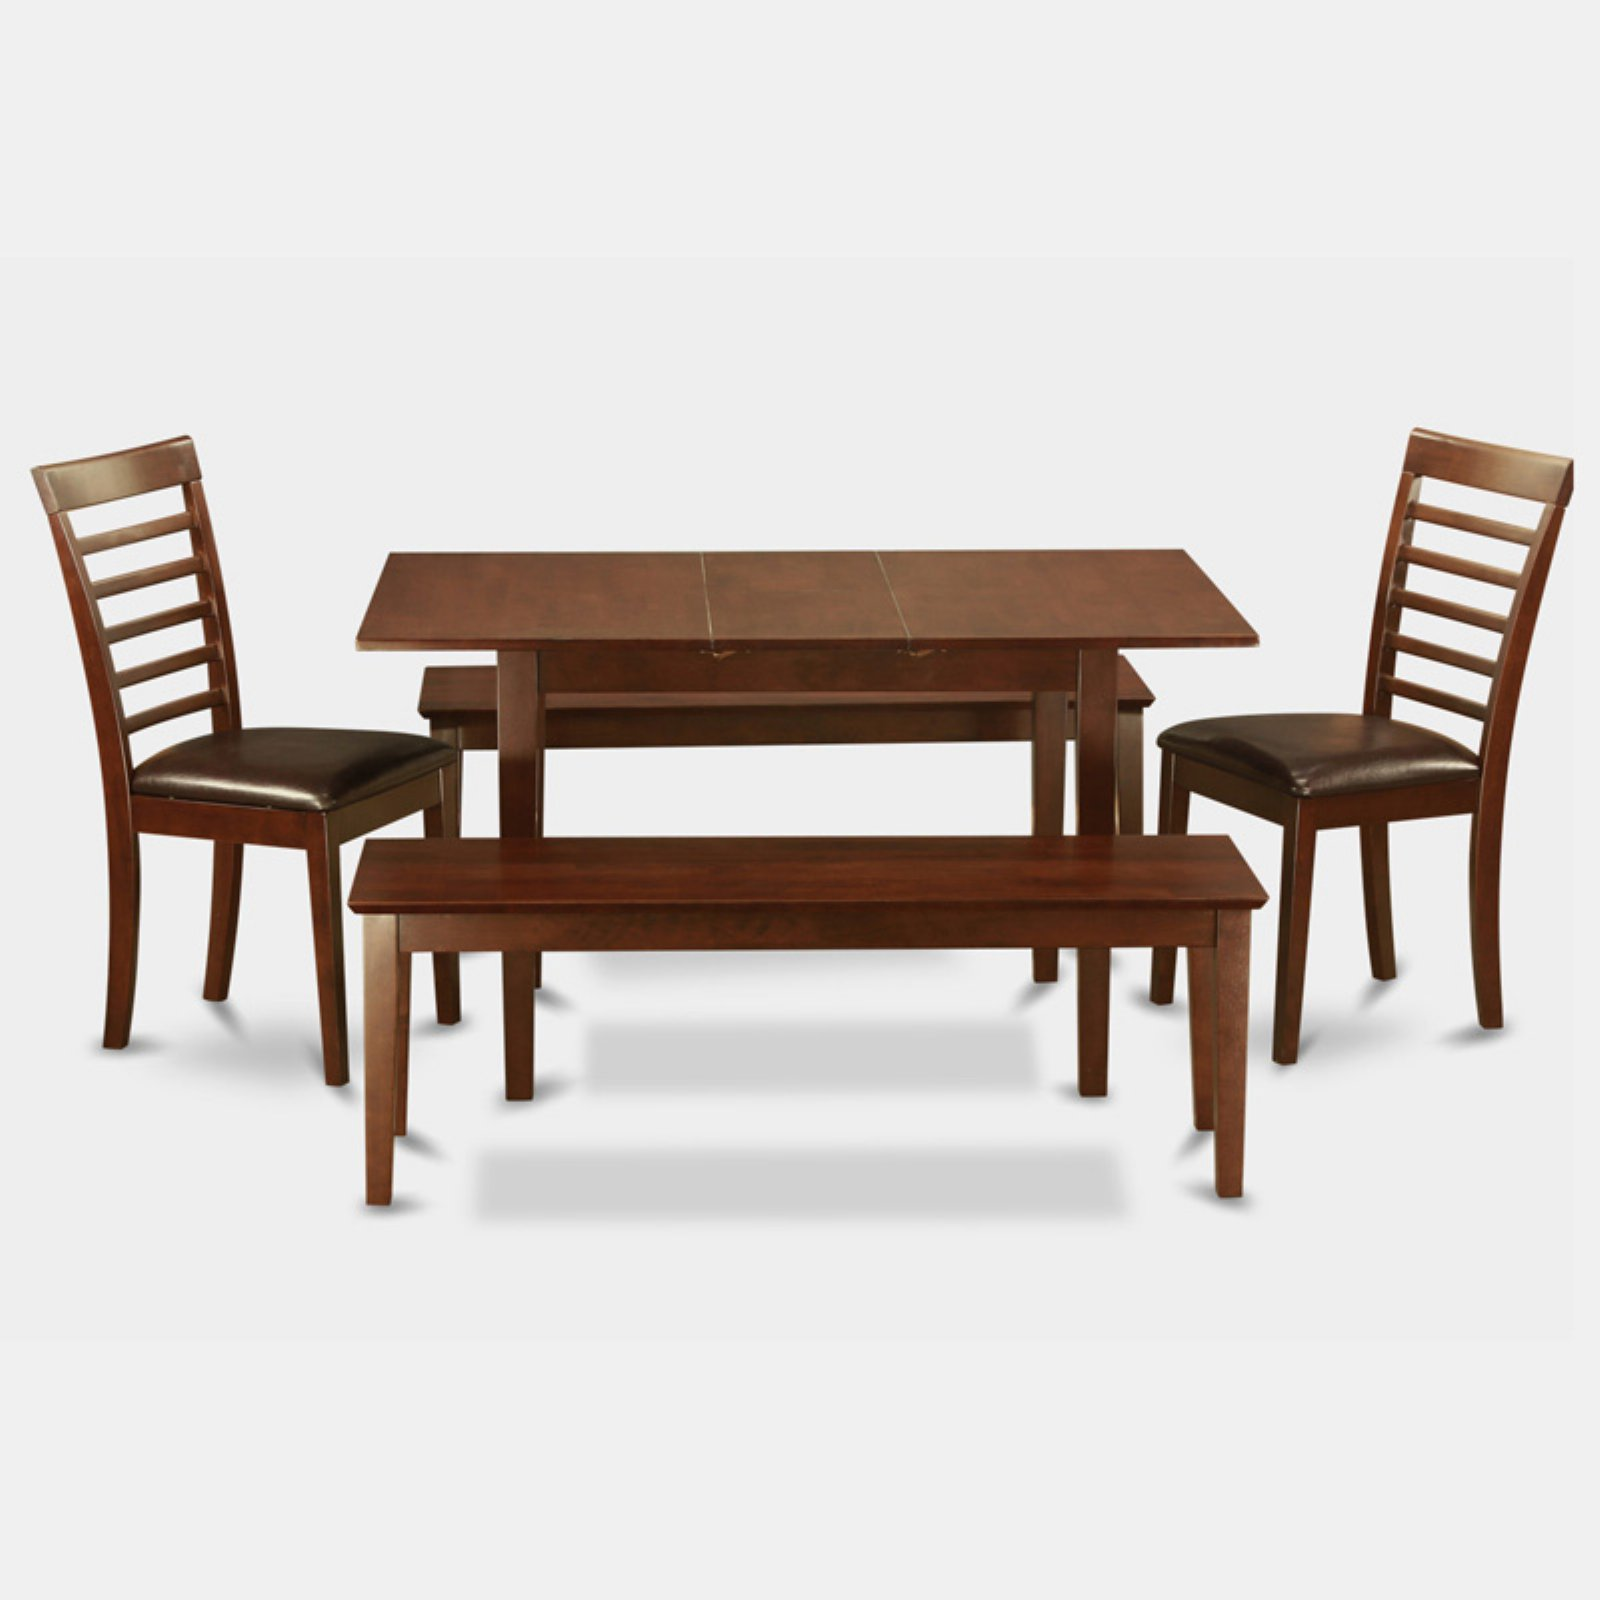 East West Furniture Norfolk 5 Piece Straight Ladder Back Dining Table Set  With 2 Benches